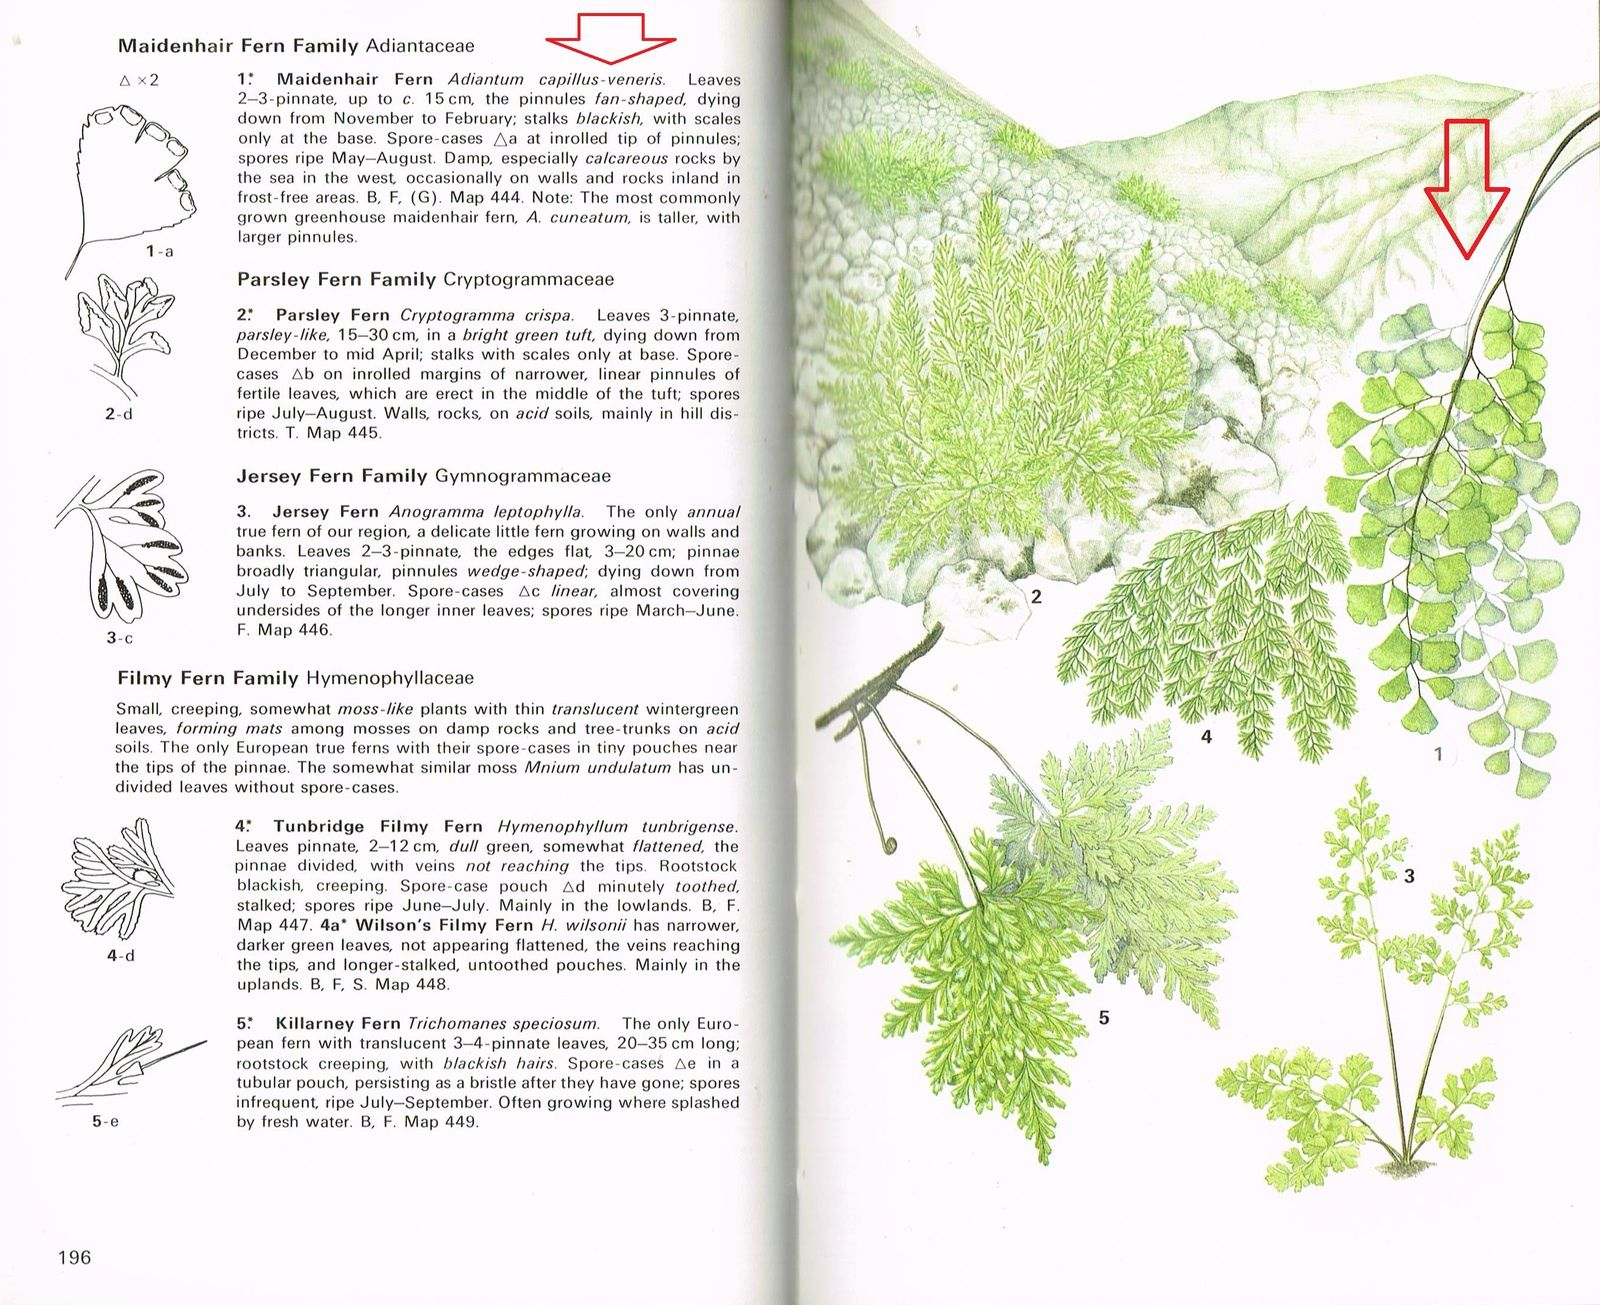 Une proche espèce moderne de notre Fougère fossile: Adiantum capillus-veneris, une Adiantaceae d'Europe du nord. In: Collins Guide of Grasses, Sedges, Rushes and Ferns of Britain and Northern Europe. Text by Richard Fitter ad Alastair Fitter. Illustrated by Ann Farrer. Collins, London, 1984.